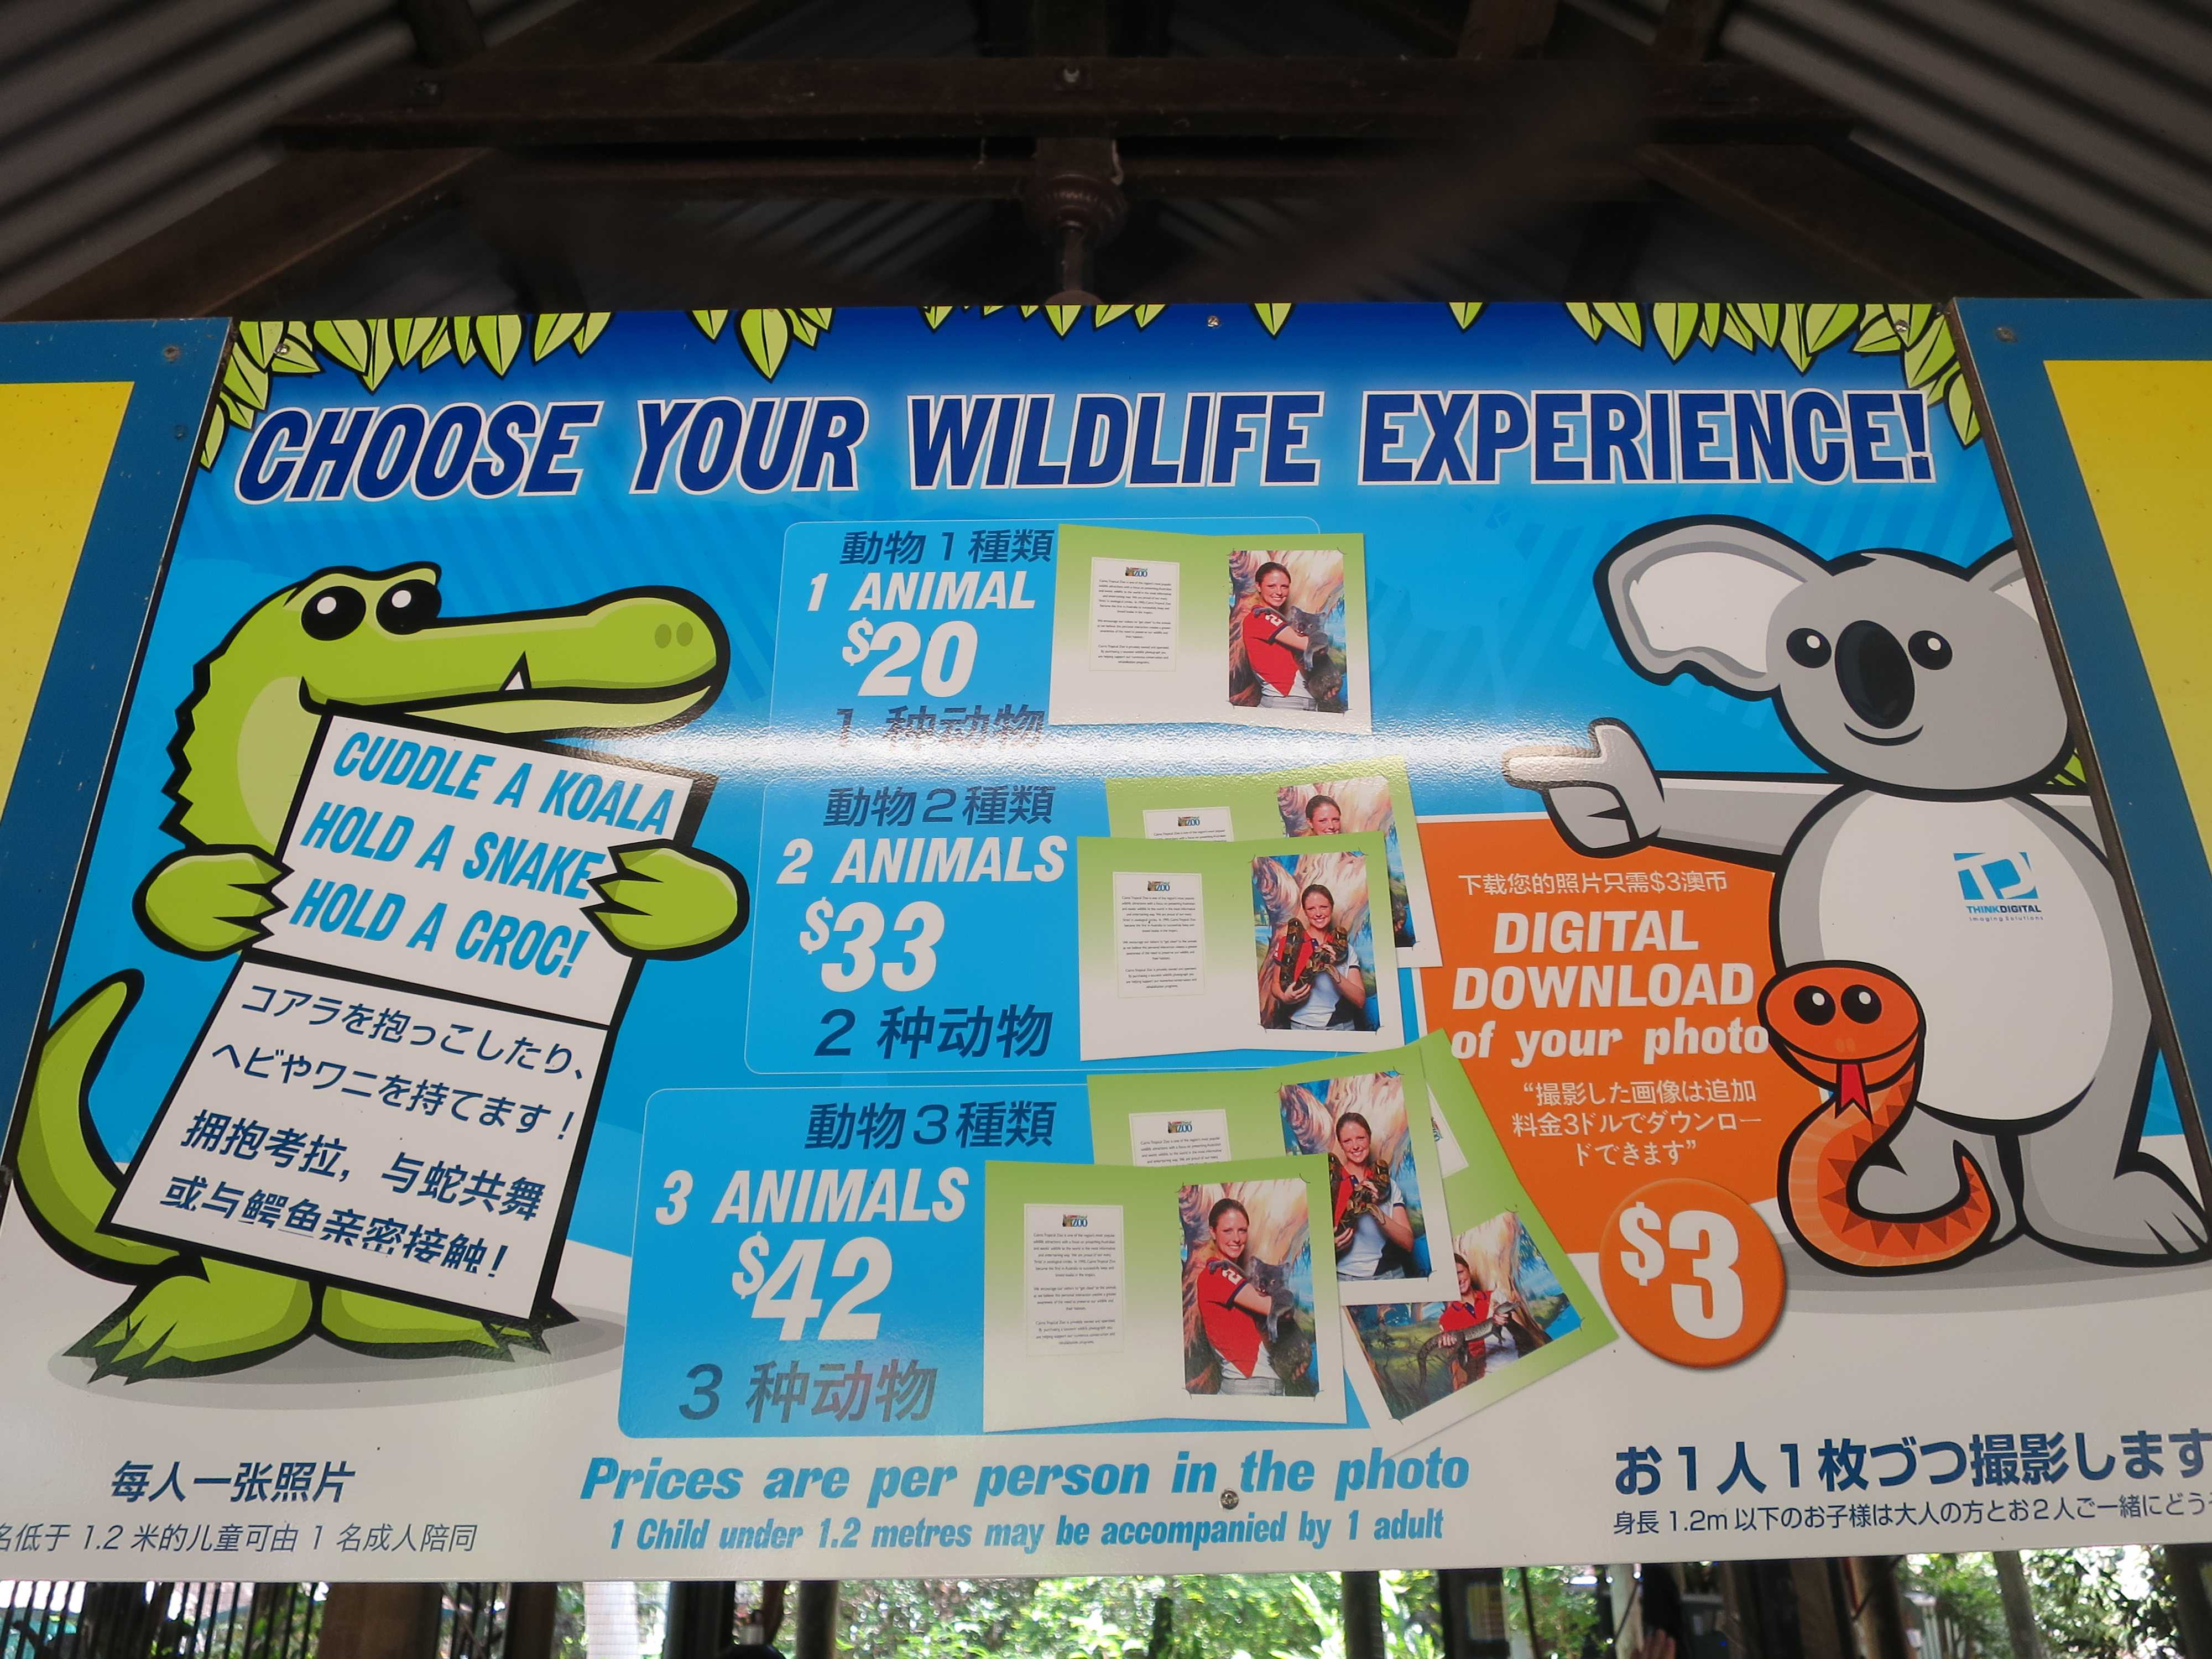 ケアンズトロピカルズー - CHOOSE YOUR WILDLIFE EXPERIENCE!